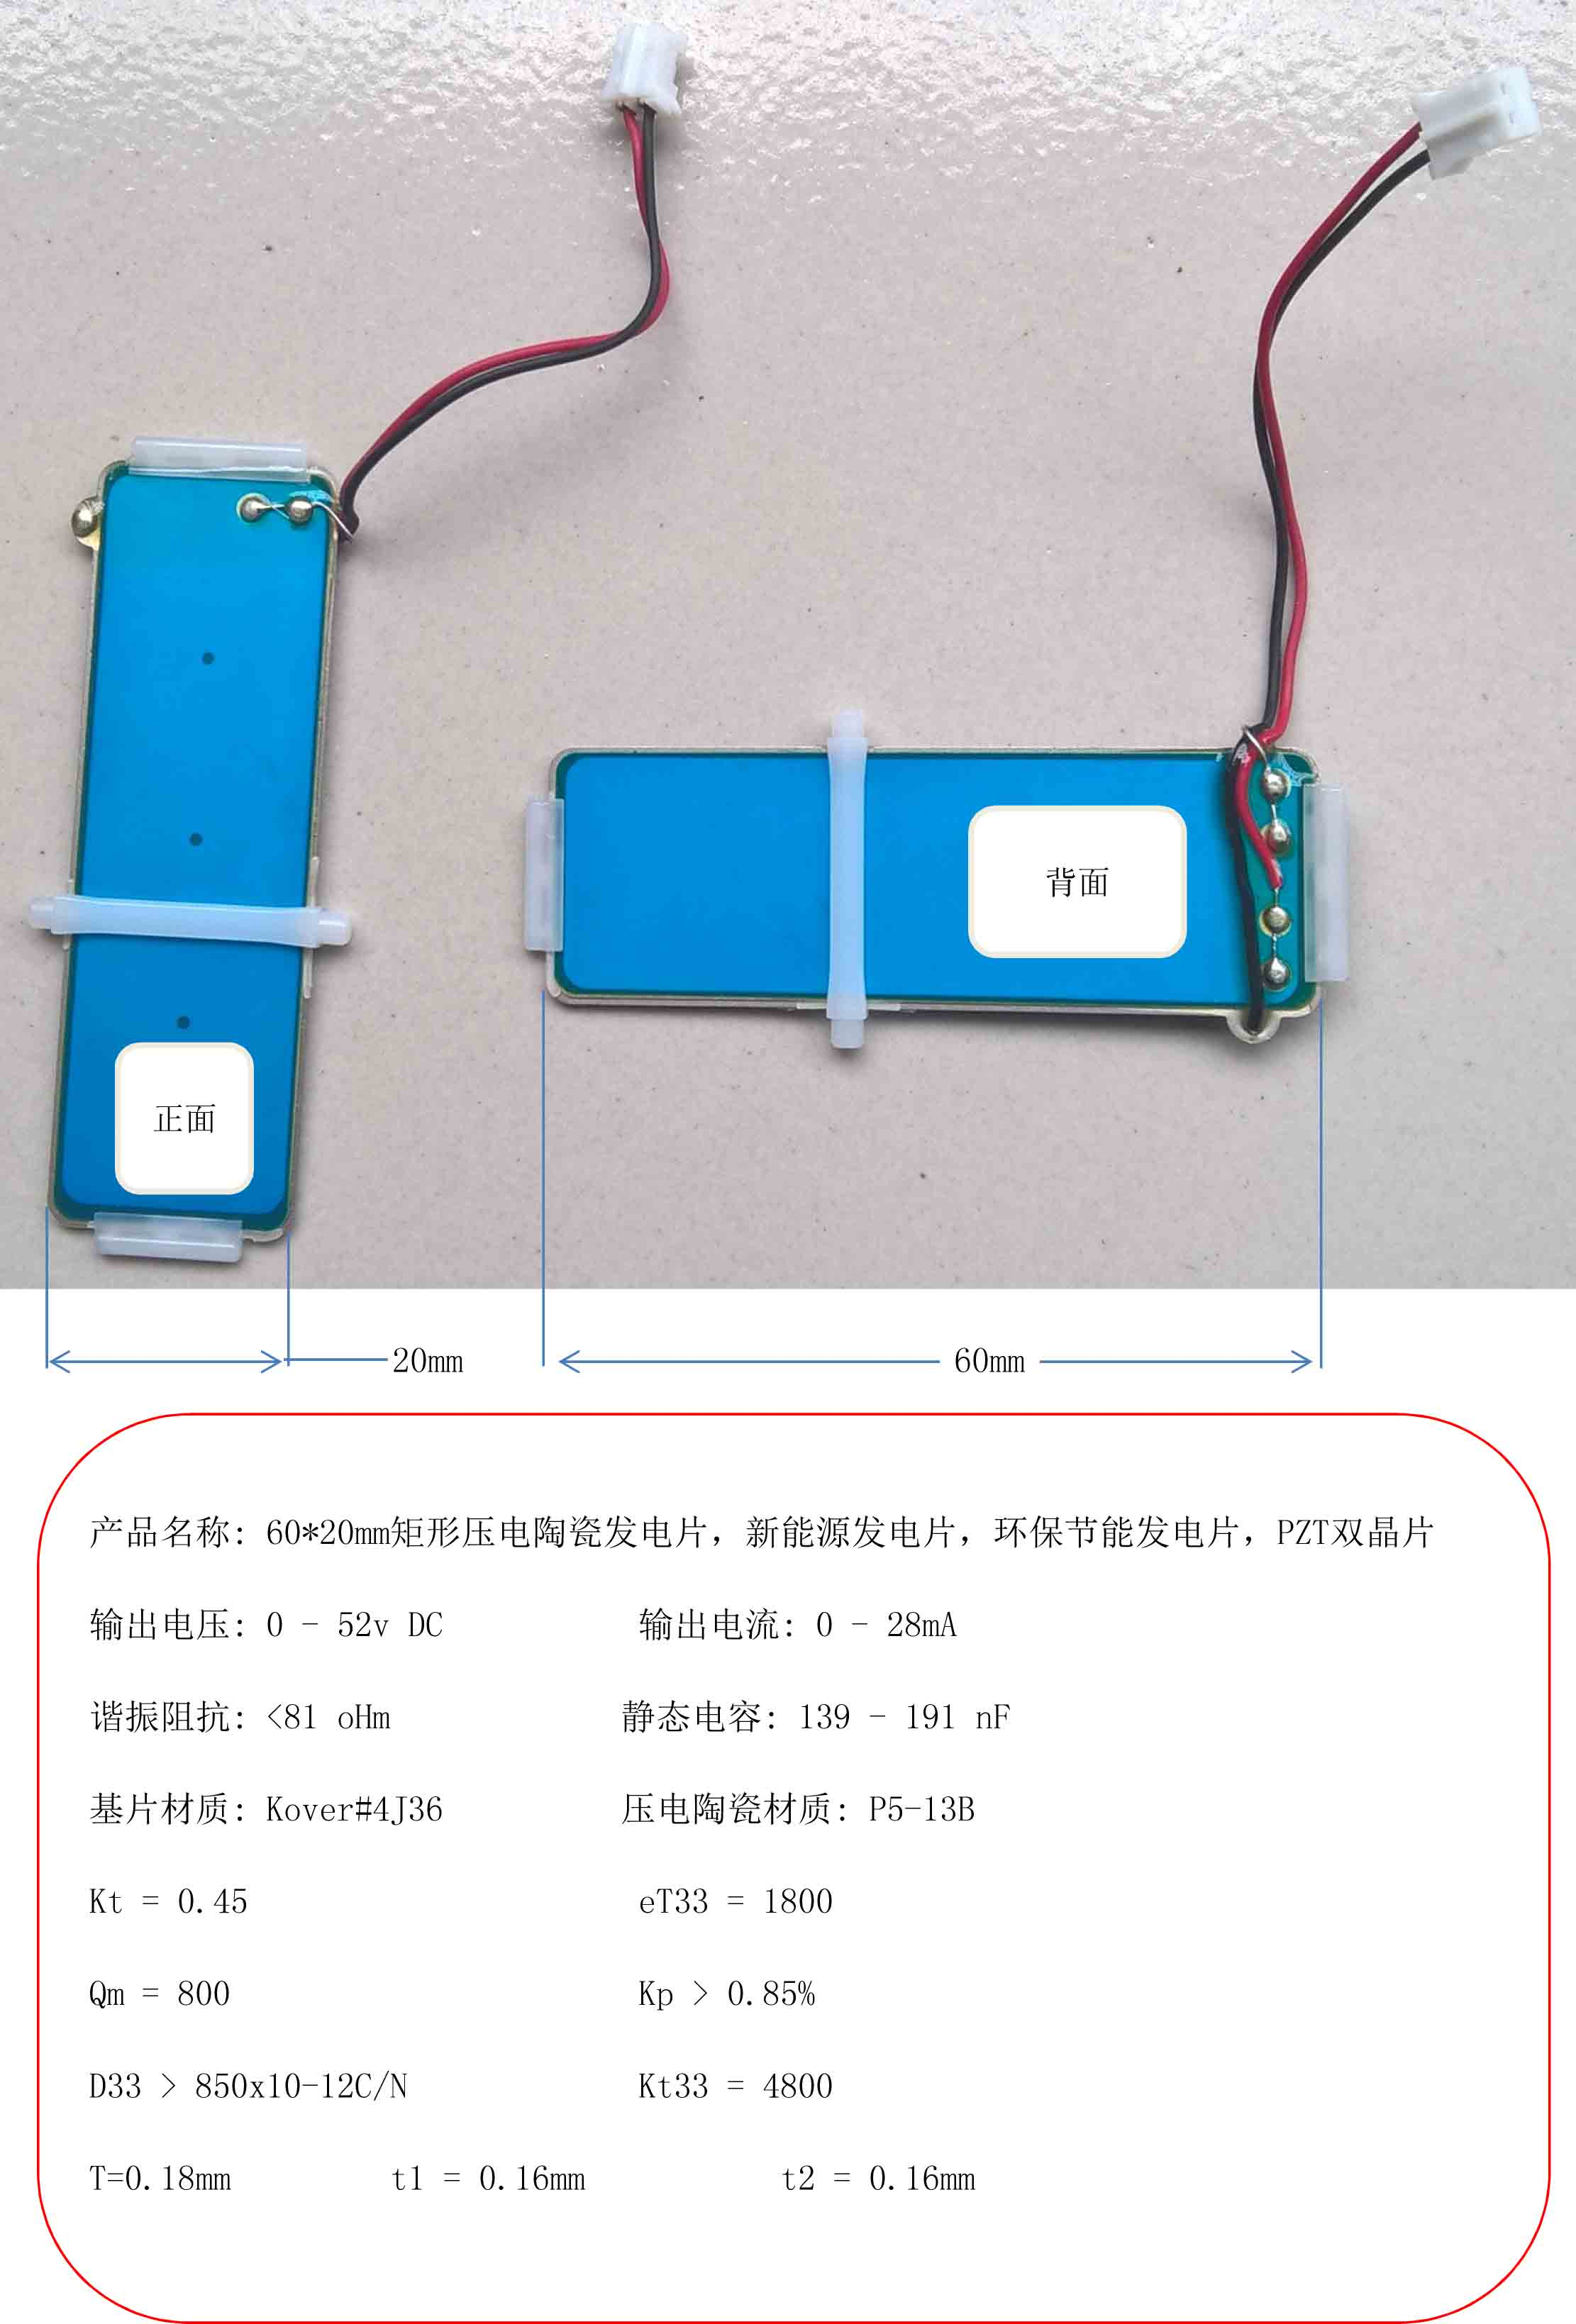 Rectangular Piezoelectric Ceramic Power Chip, New Energy/Environmental Energy-saving Power Generation PZT Dual ChipRectangular Piezoelectric Ceramic Power Chip, New Energy/Environmental Energy-saving Power Generation PZT Dual Chip